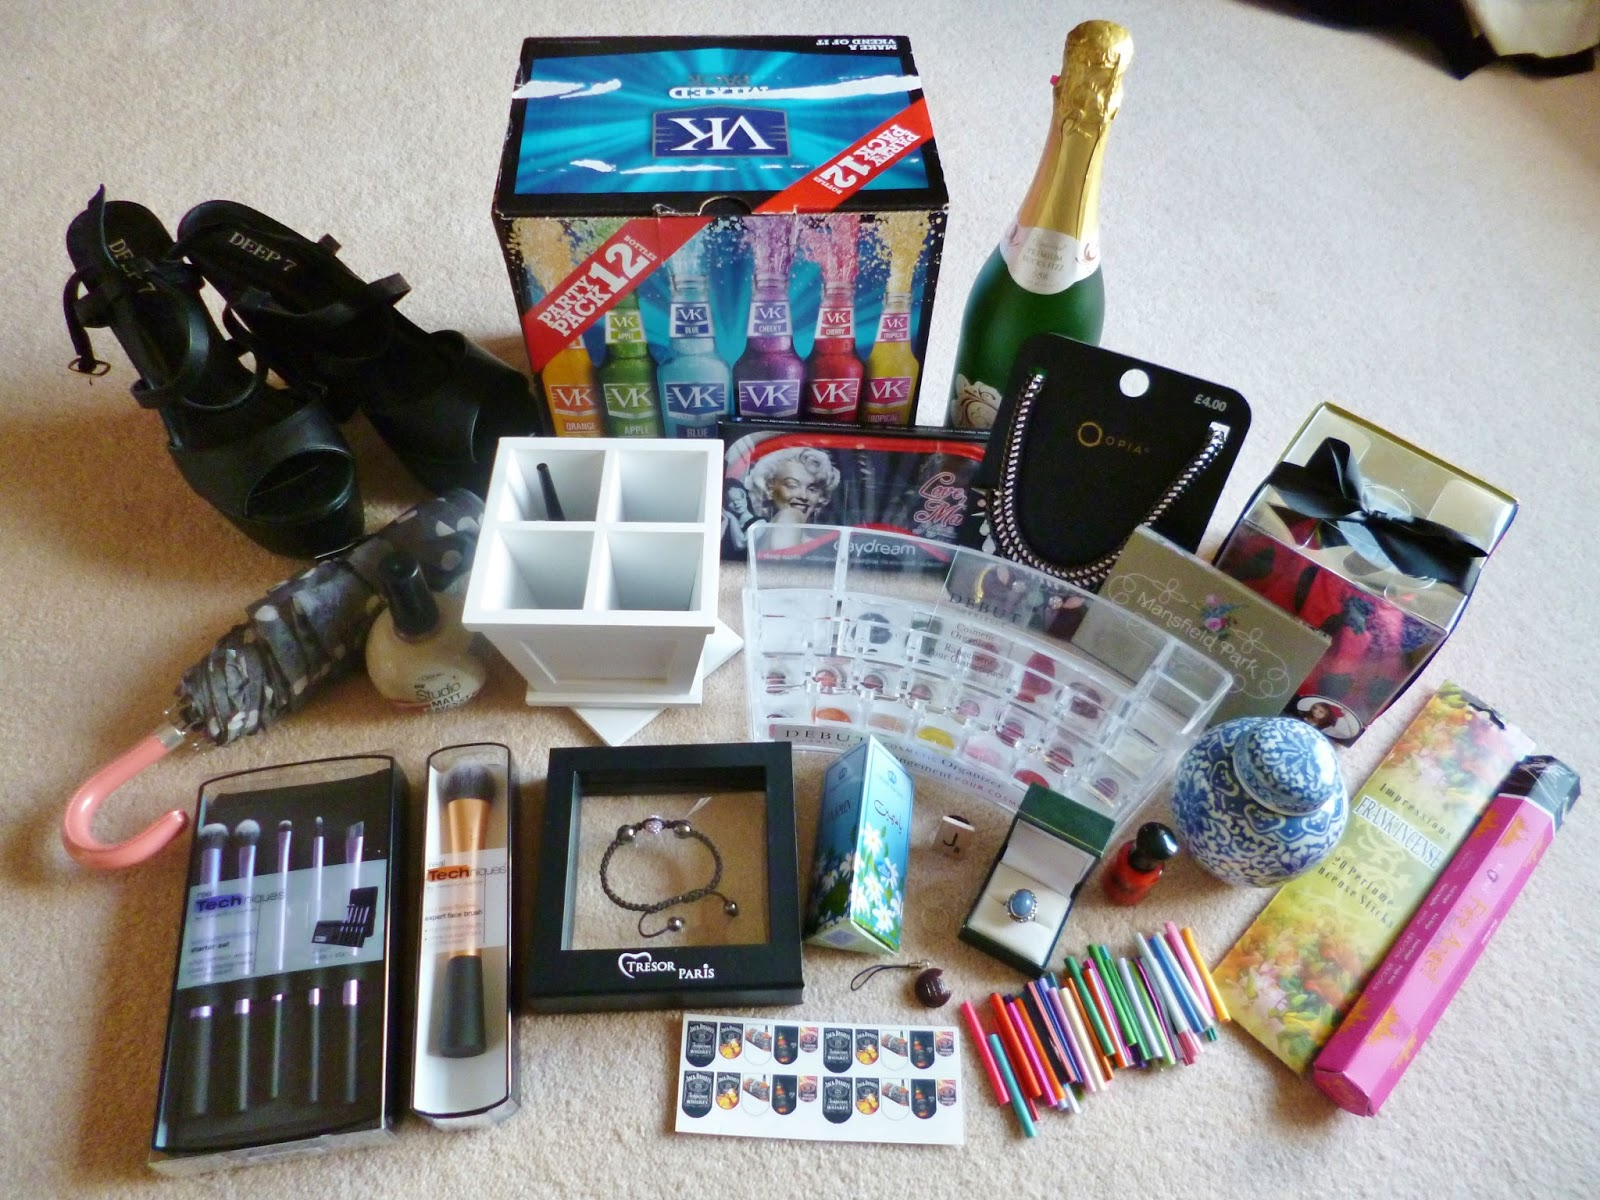 21st birthday presents Painted Glitter: Haul | 21st Birthday Presents! 21st birthday presents